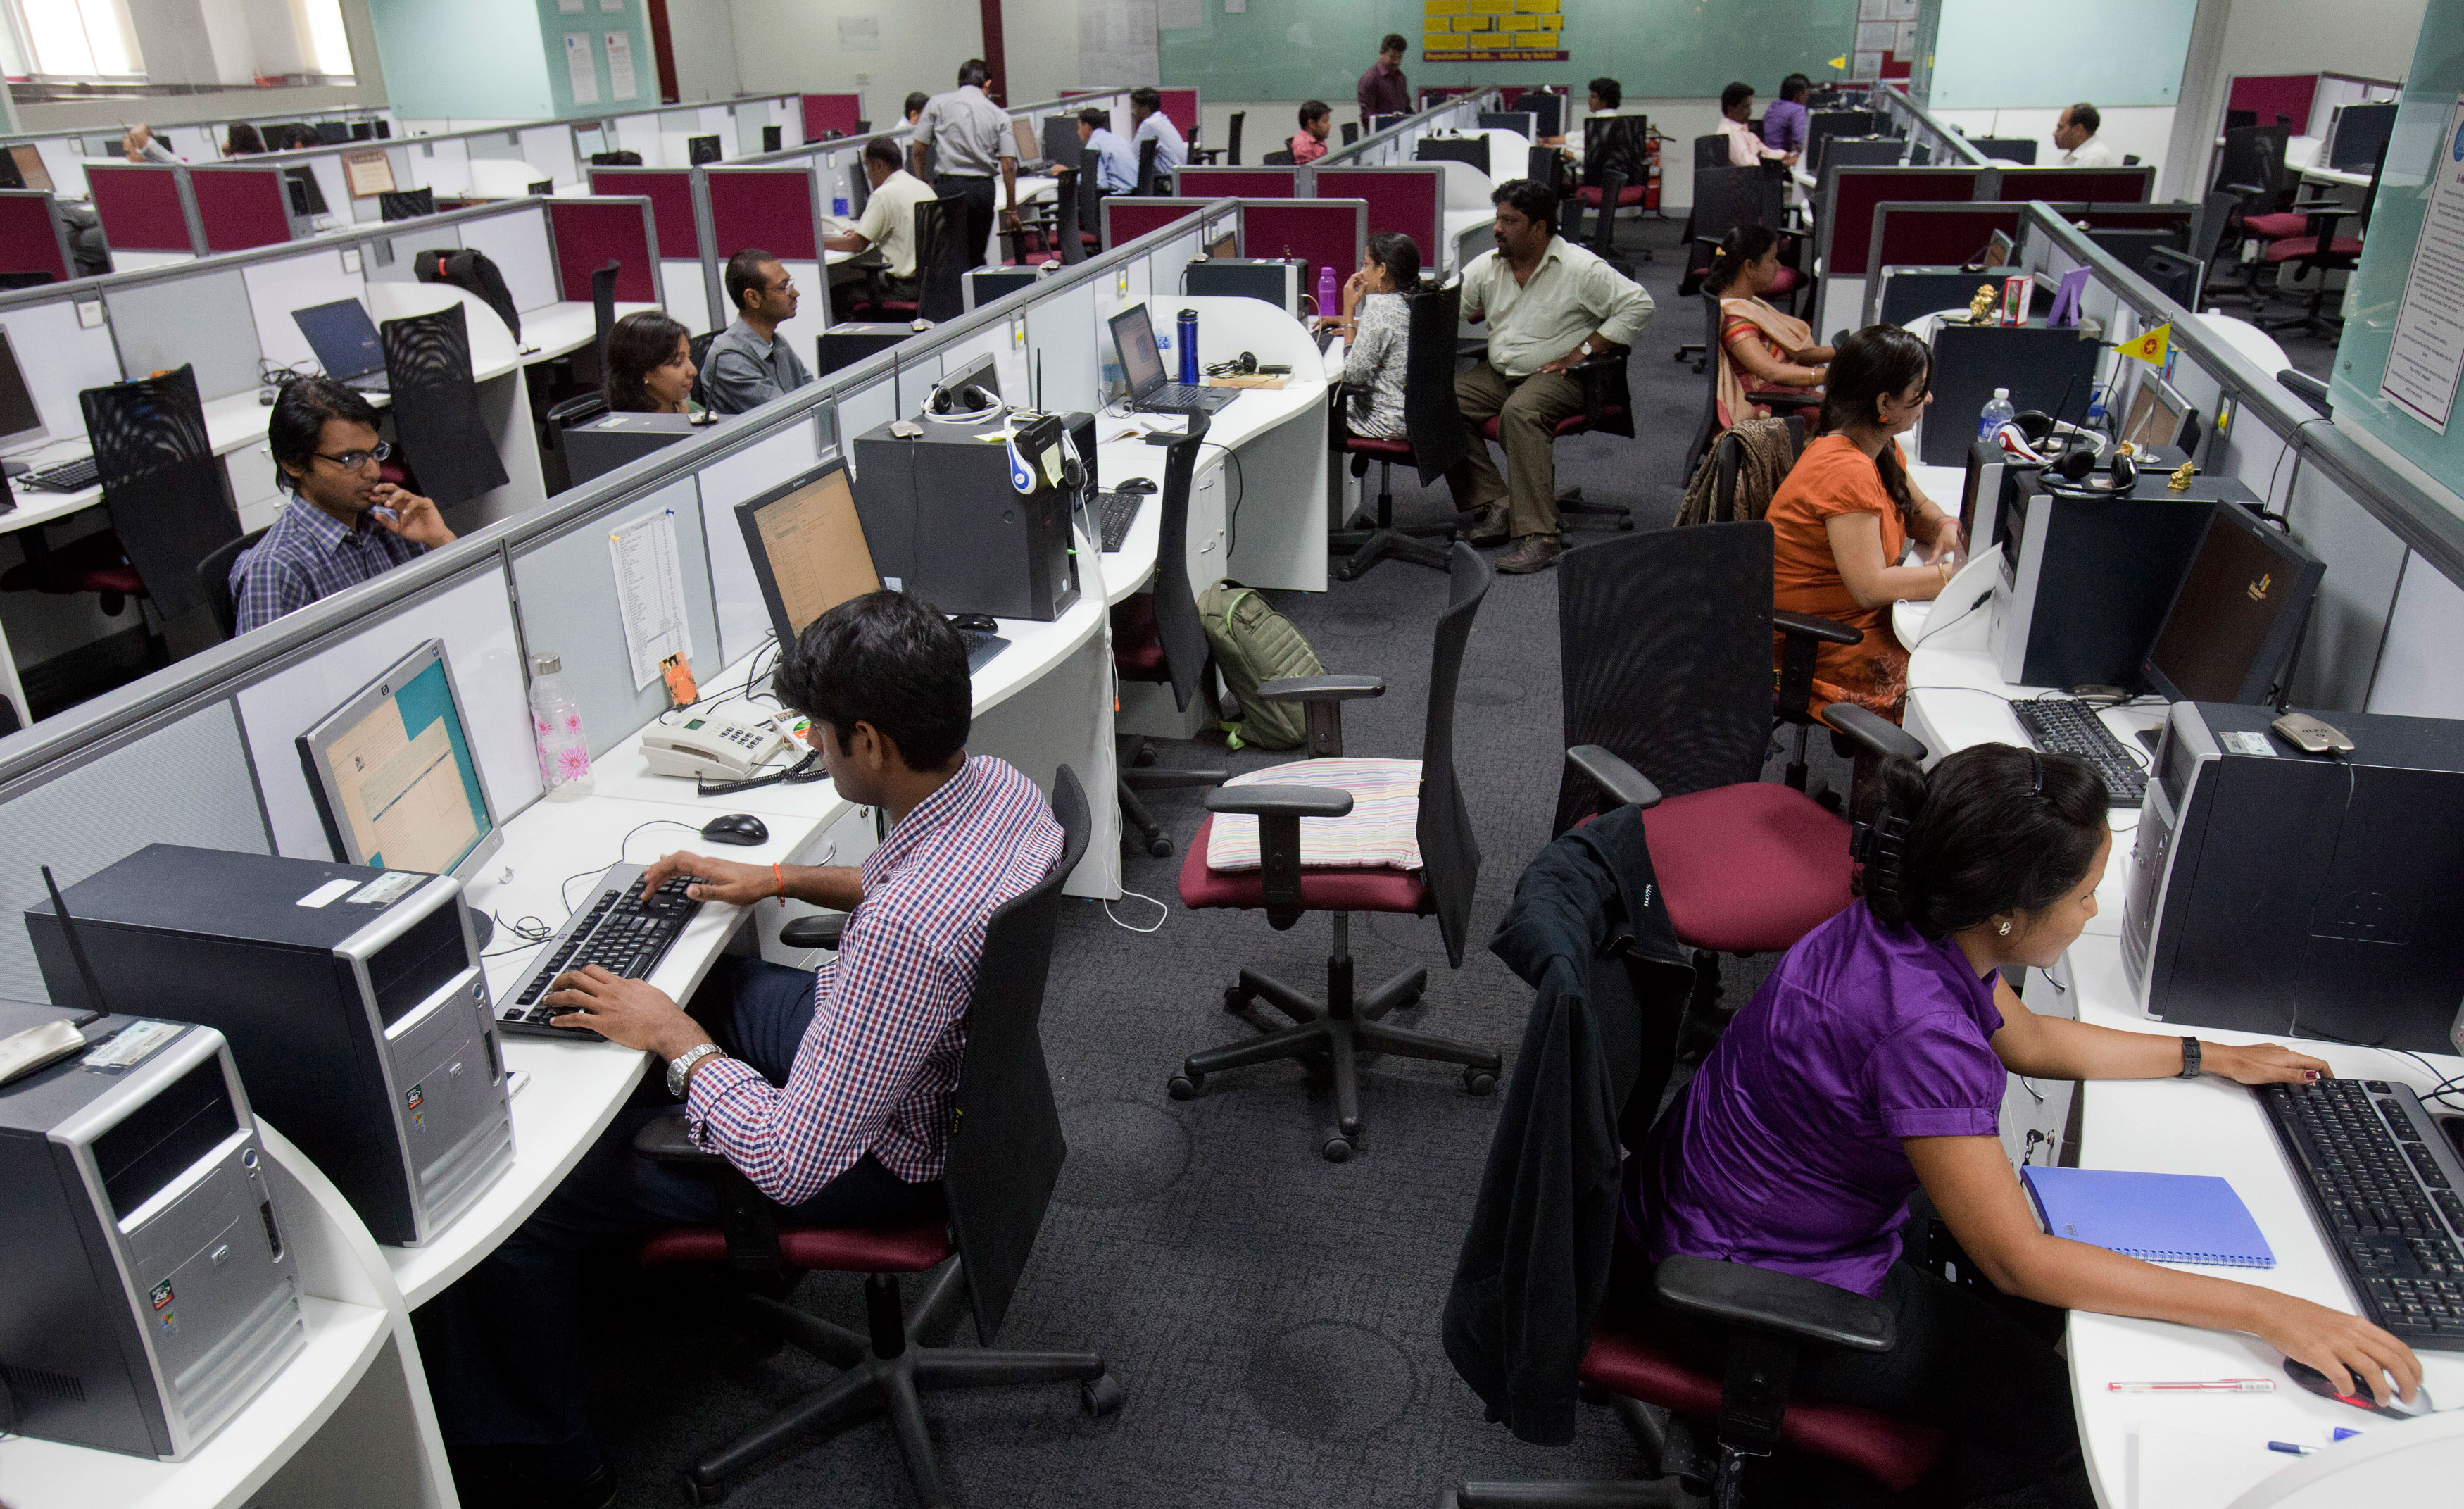 Office space absorption in India drop 22% in first quarter of 2015: CBRE